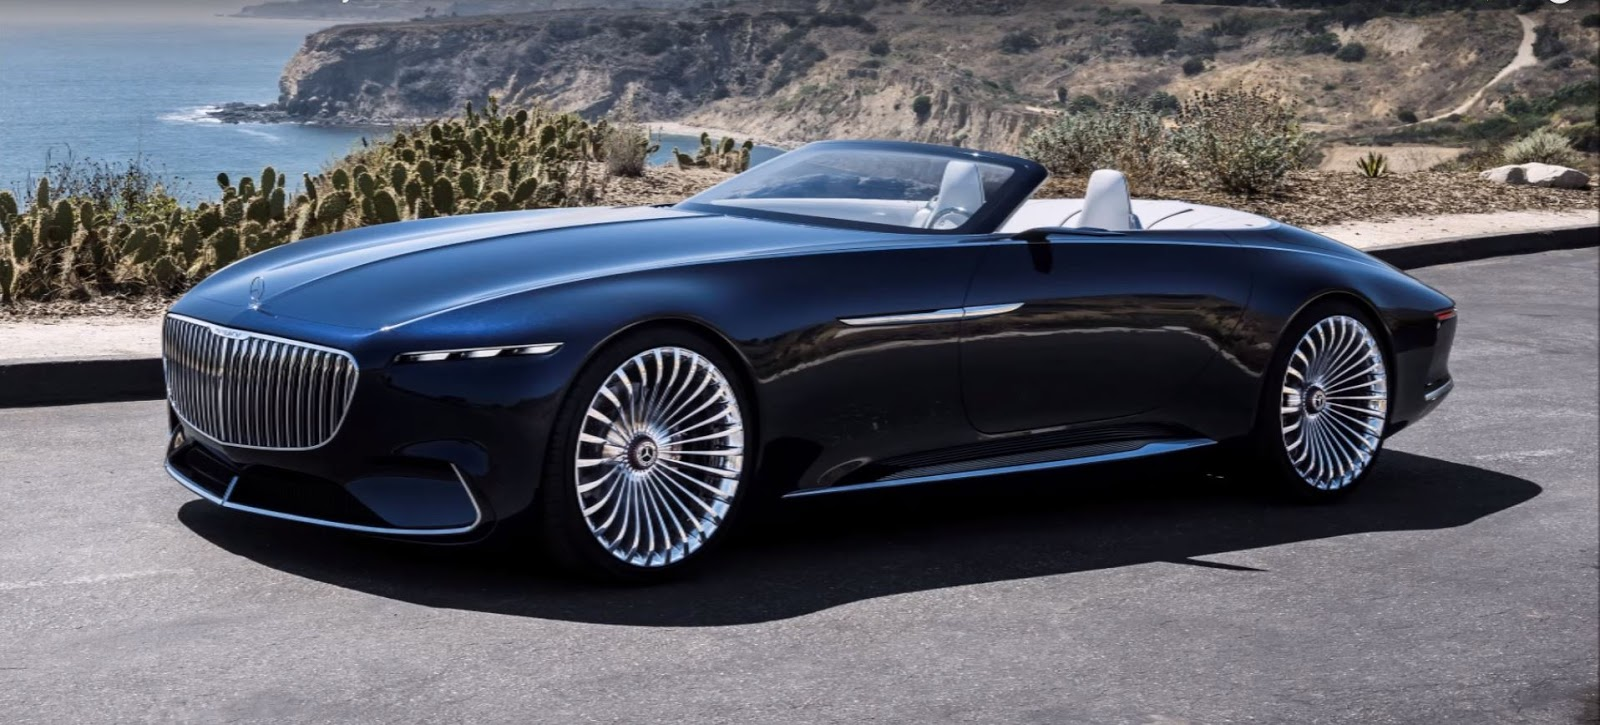 2018 Vision Mercedes Maybach 6 Cabriolet Interior Exterior And Drive